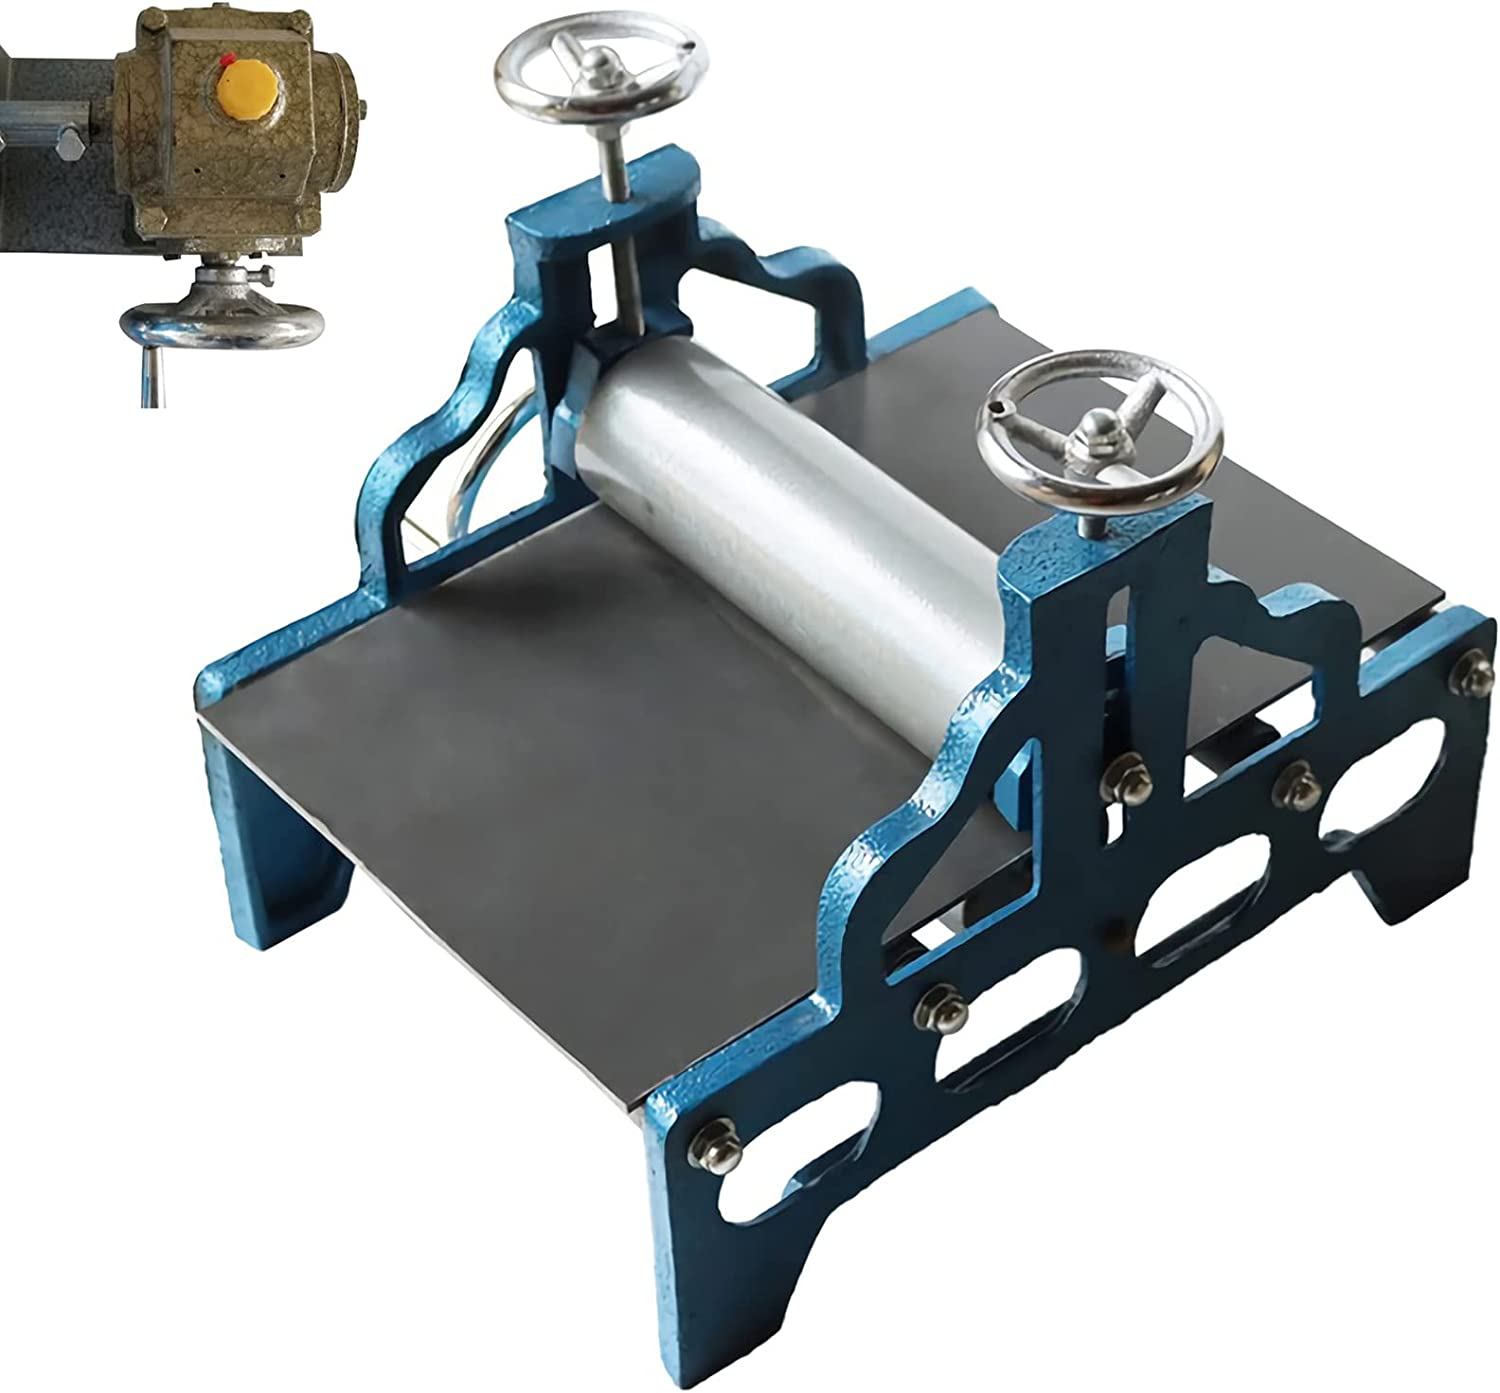 INTBUYING 19.7x12.2 in Slab Weekly update Printmaking Roller Portable Machine Directly managed store